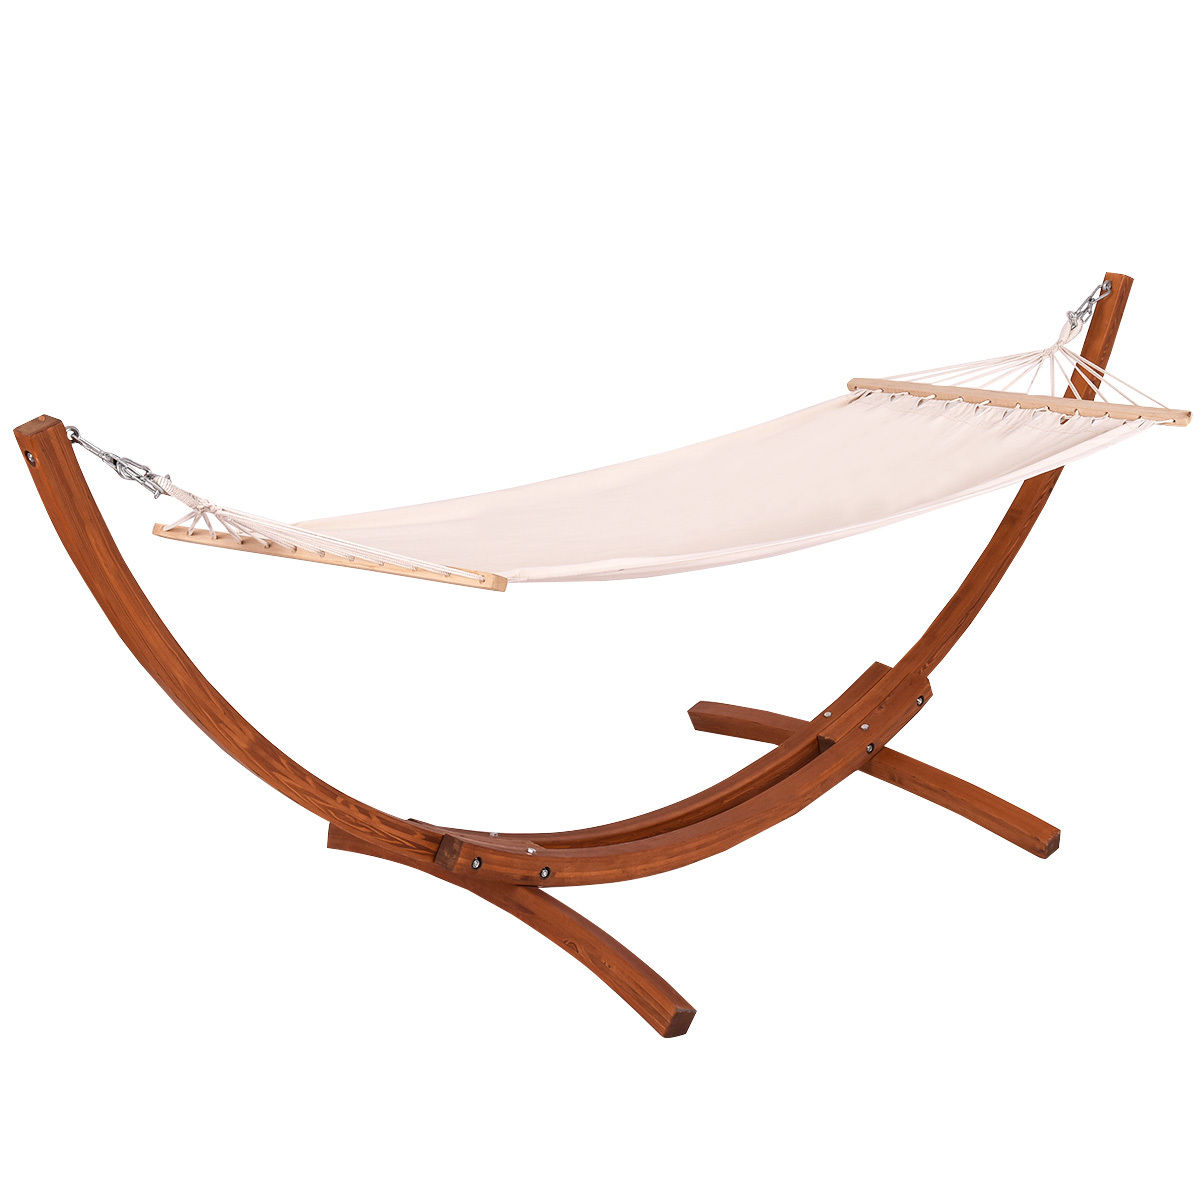 Goplus 123''X46''X48'' Wooden Curved Arc Hammock Stand with Cotton Hammock Outdoor